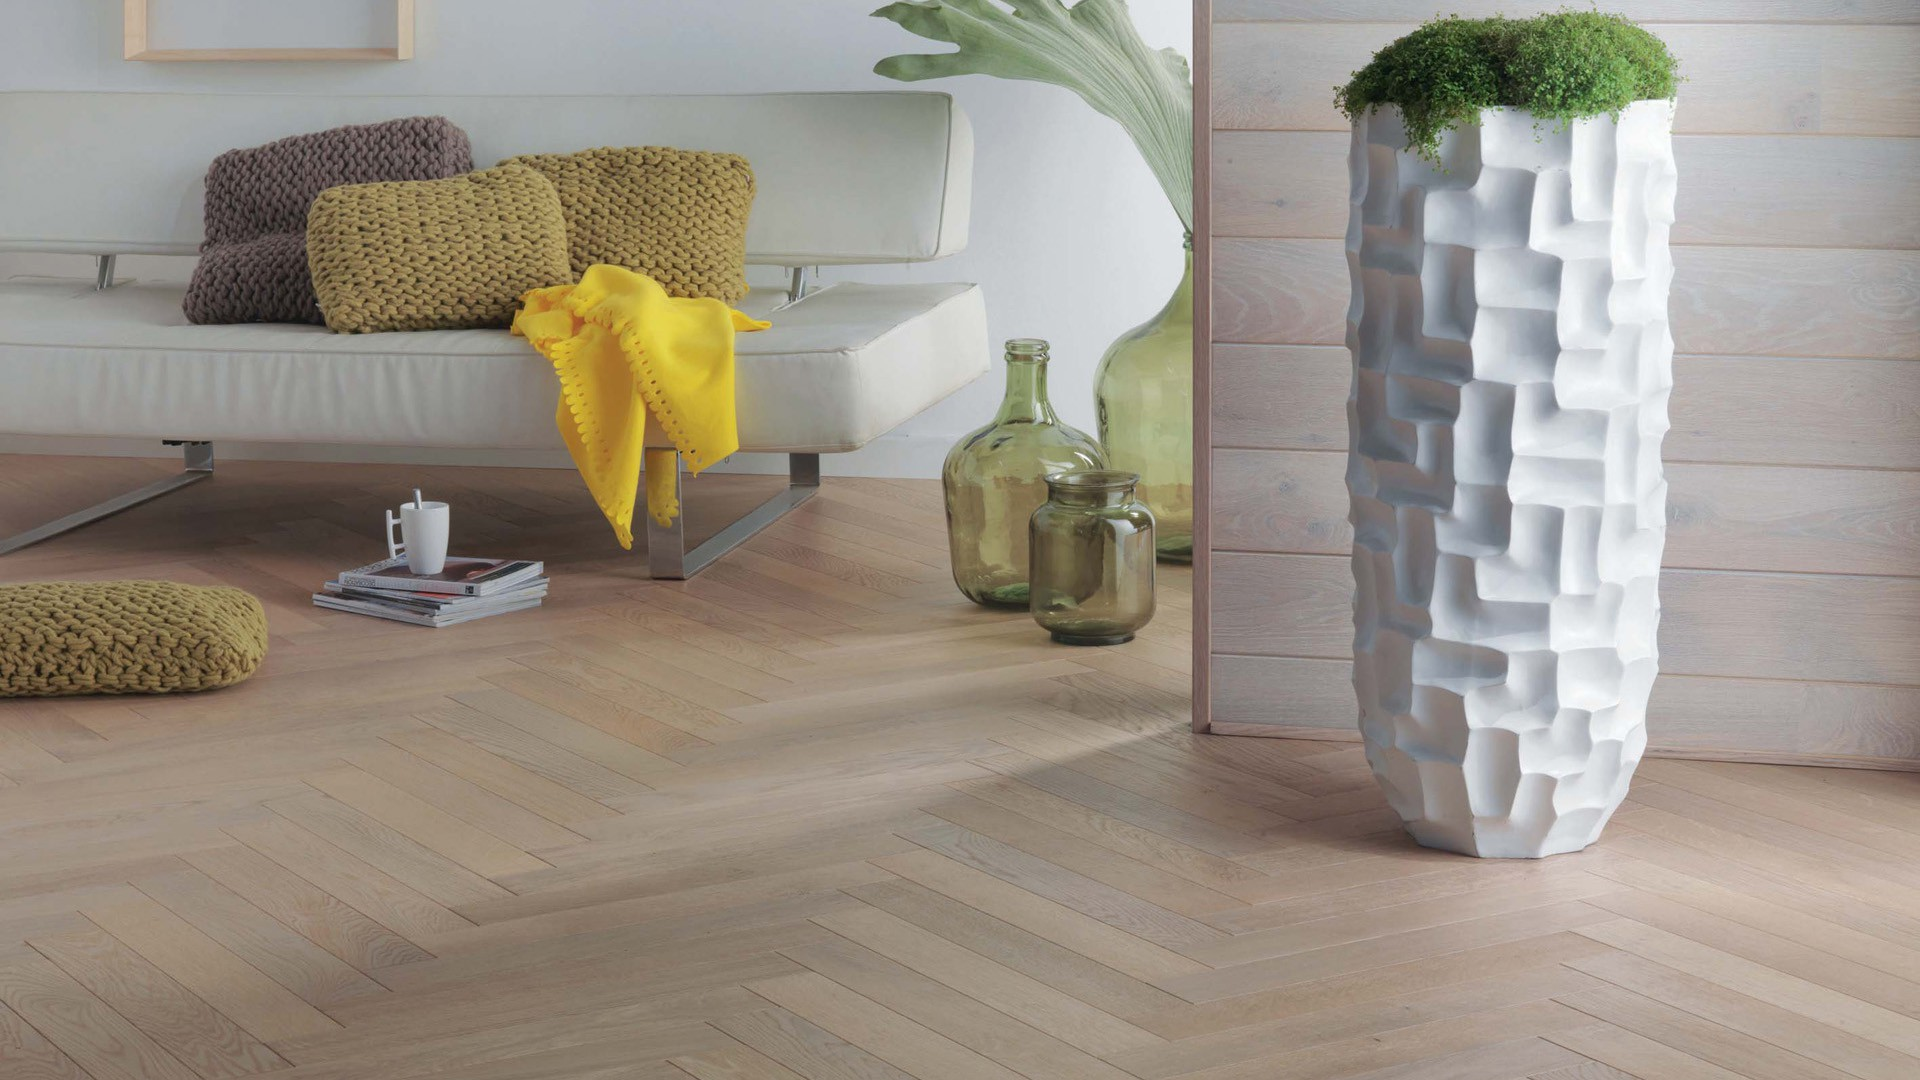 How To Take Care Of Your New Wood Floor